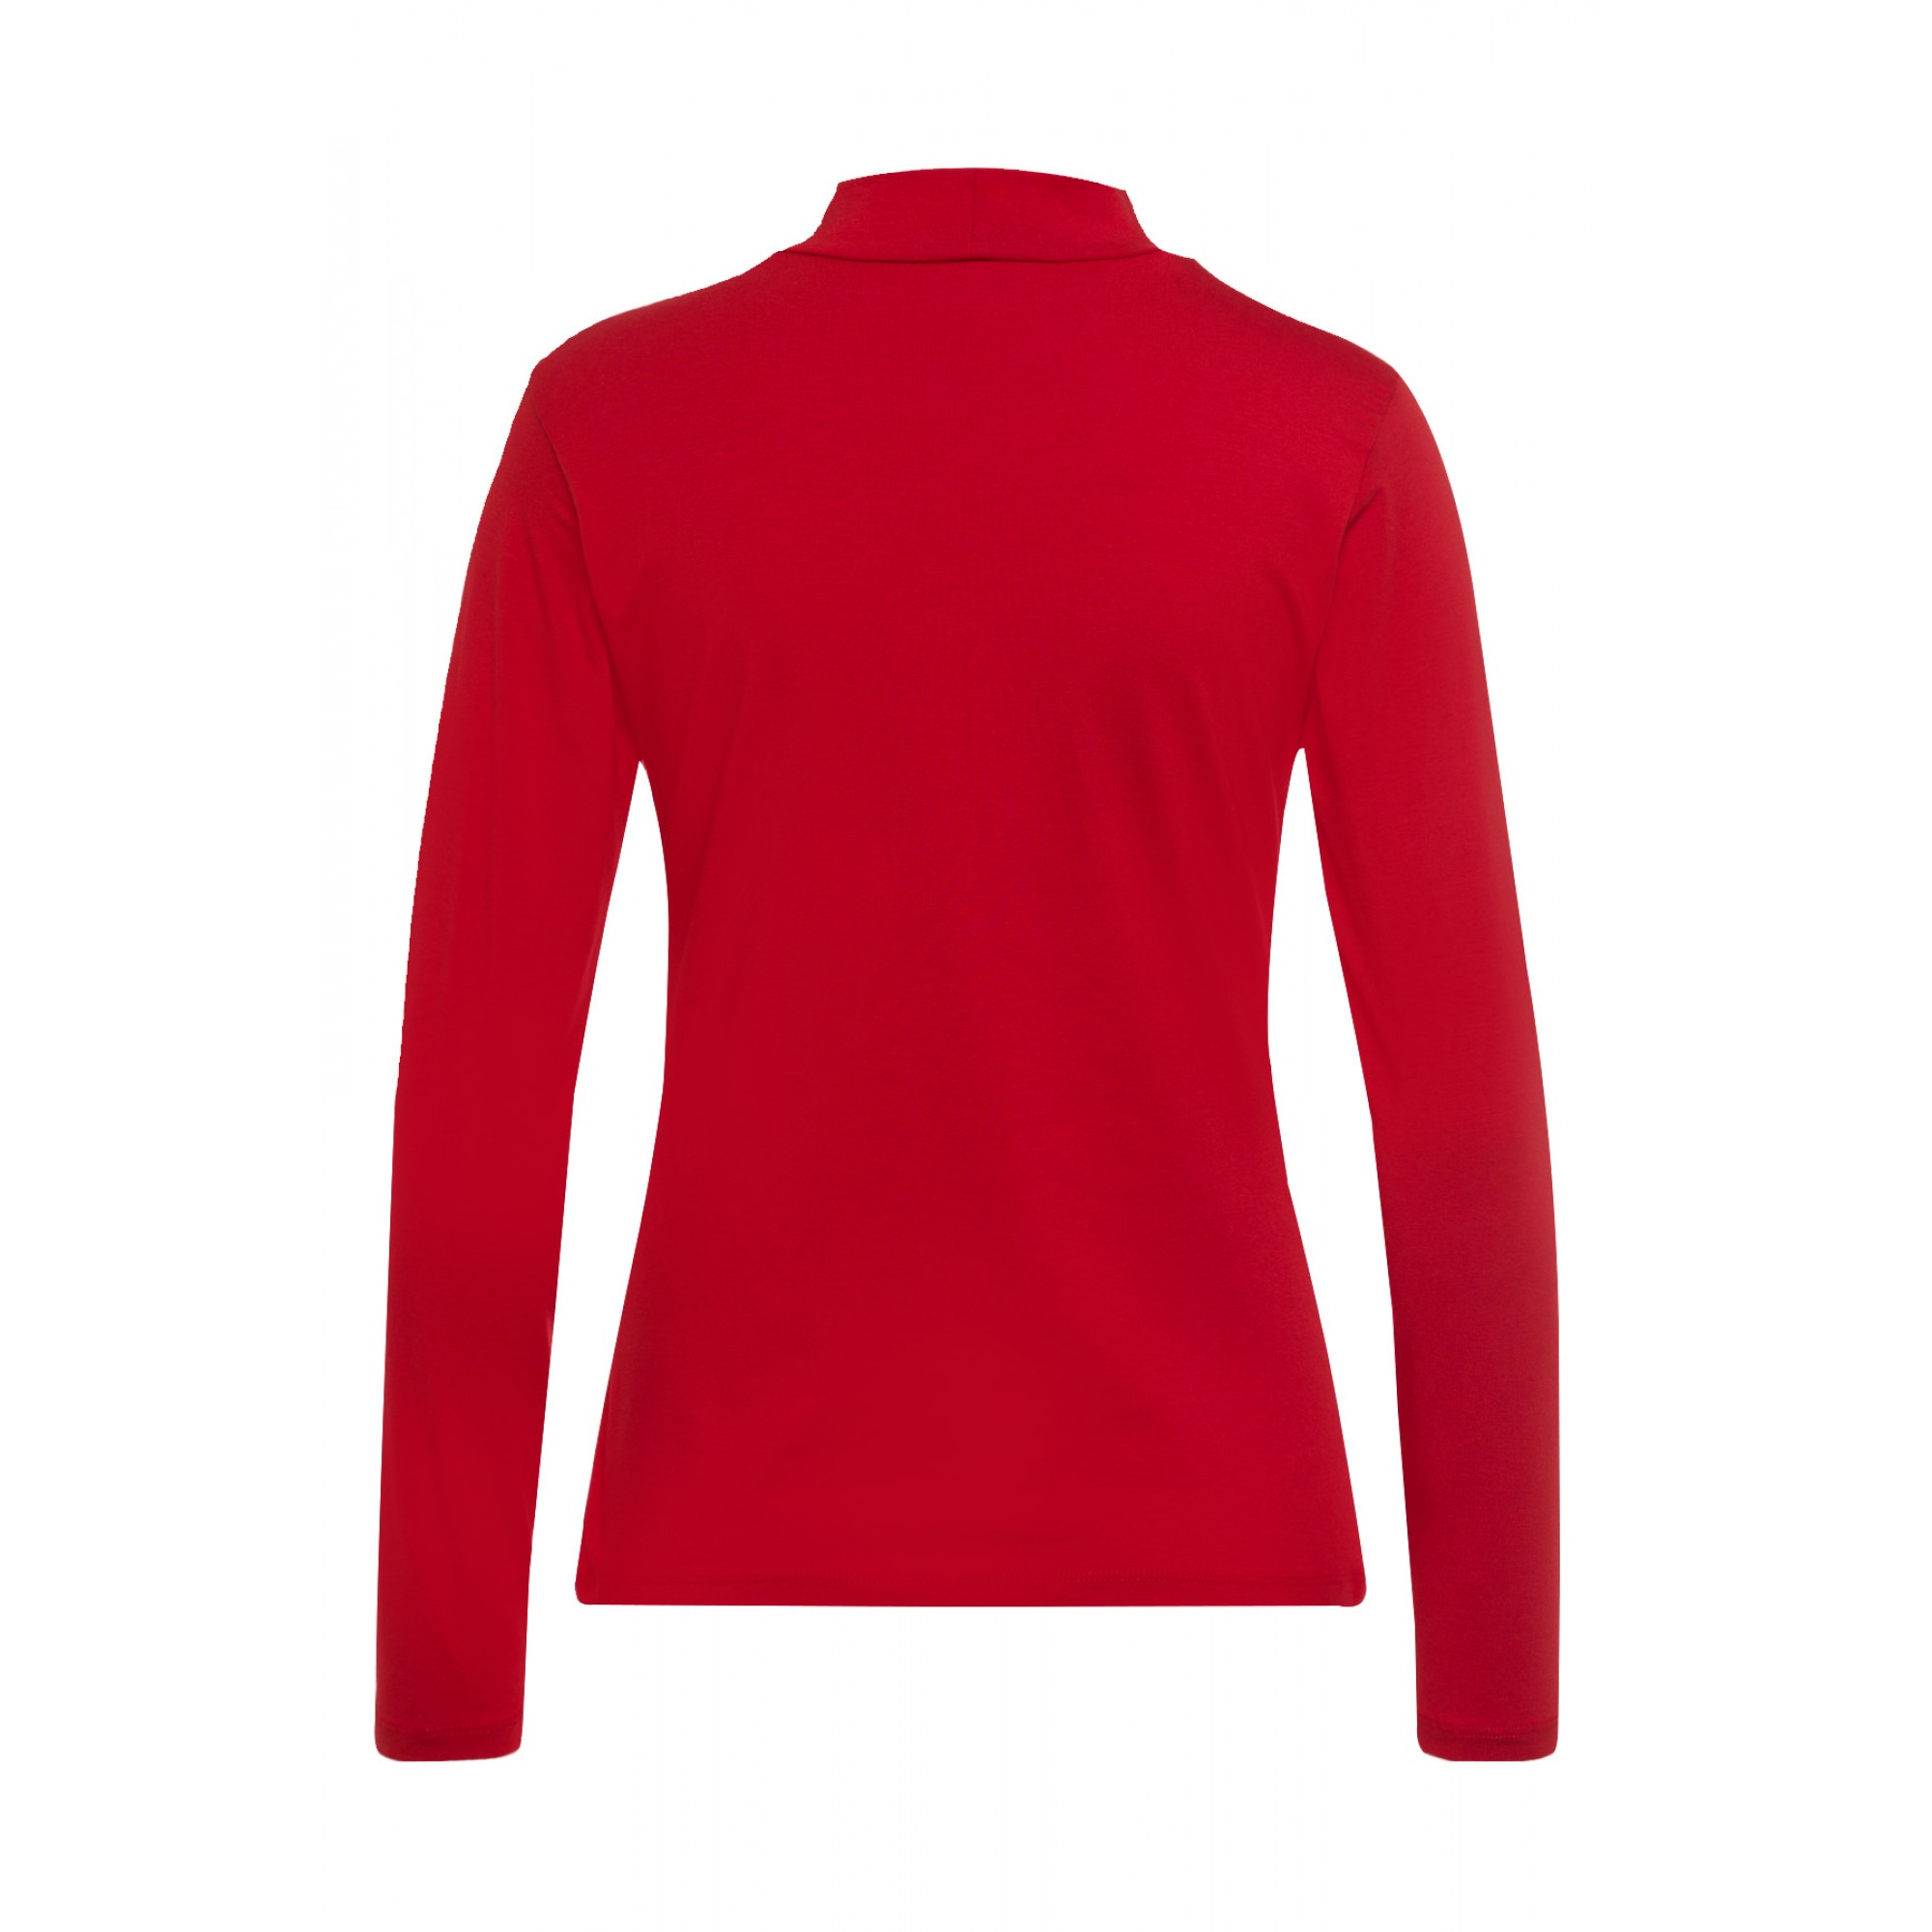 T-Shirt, Turtleneck, autumn red 01100002-0545 2